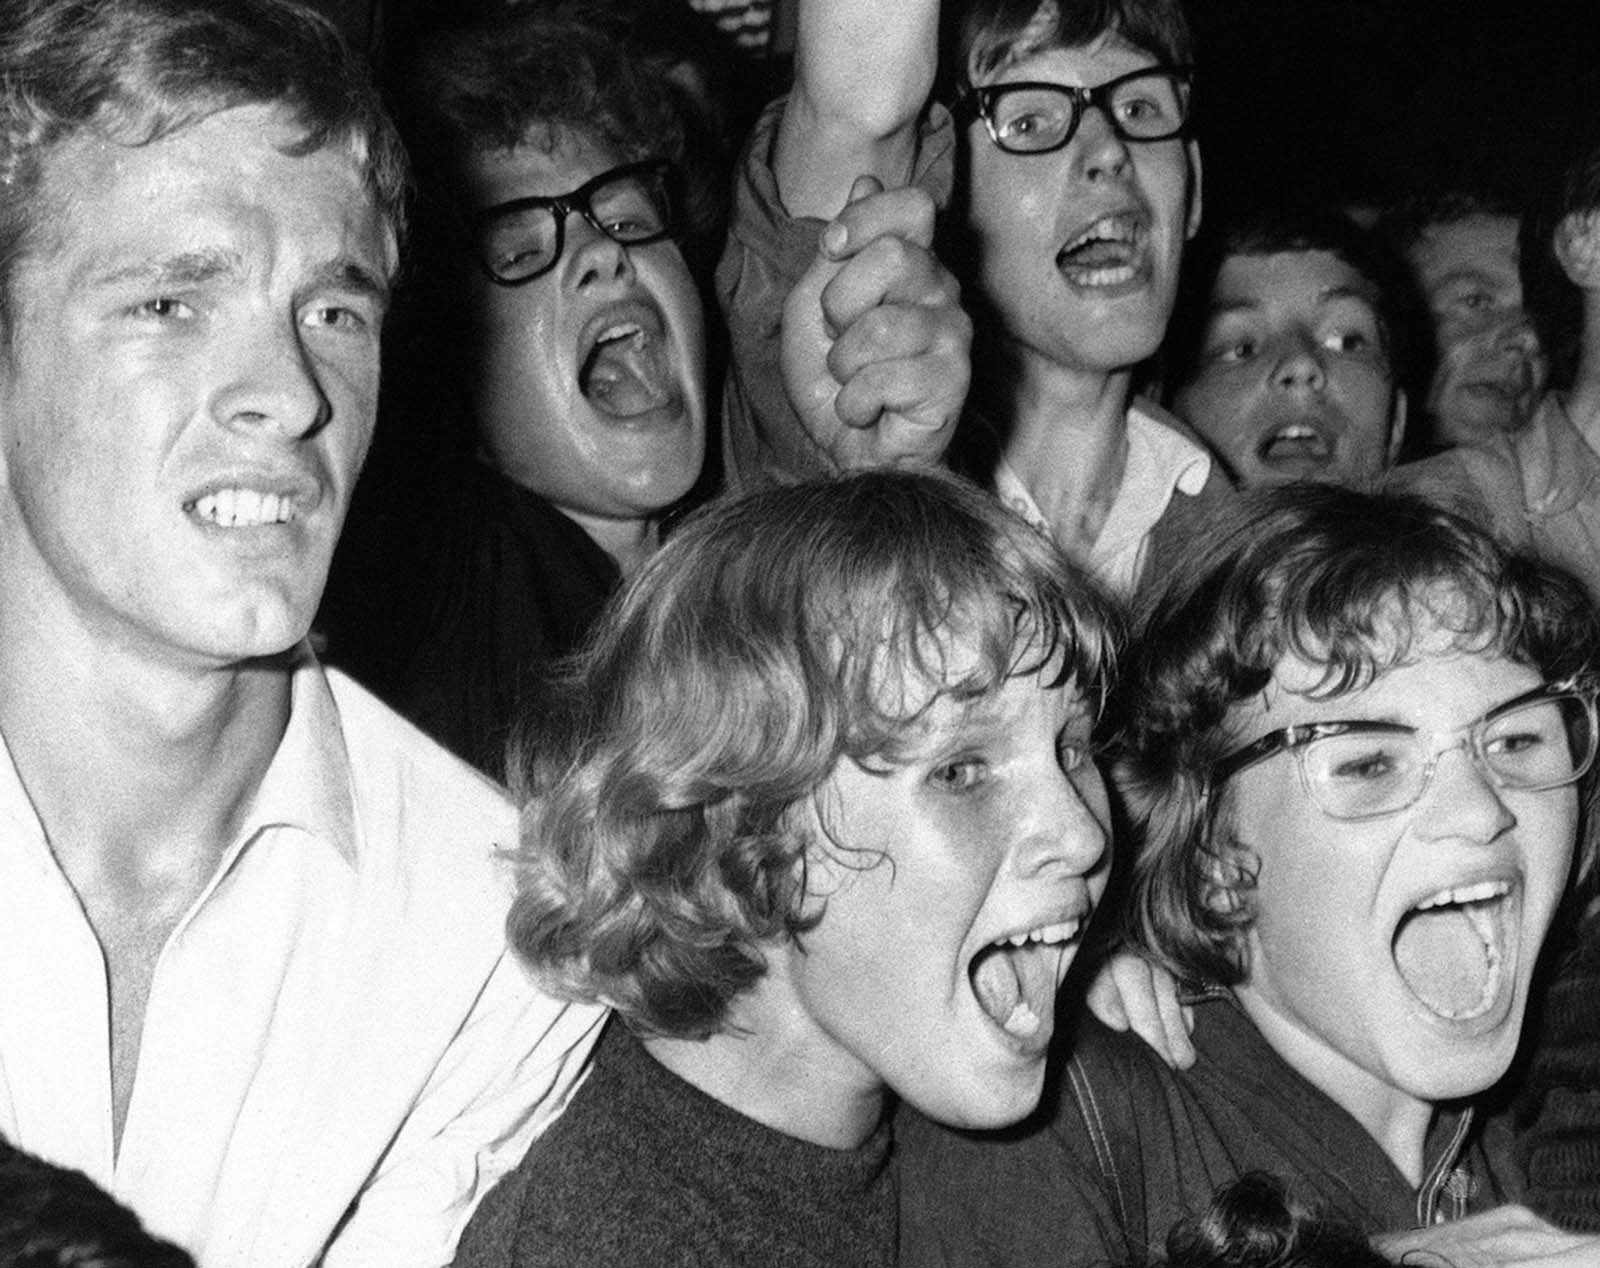 Dutch fans scream and shout during a performance by the Beatles in Blokker, Netherlands, on June 6, 1964.